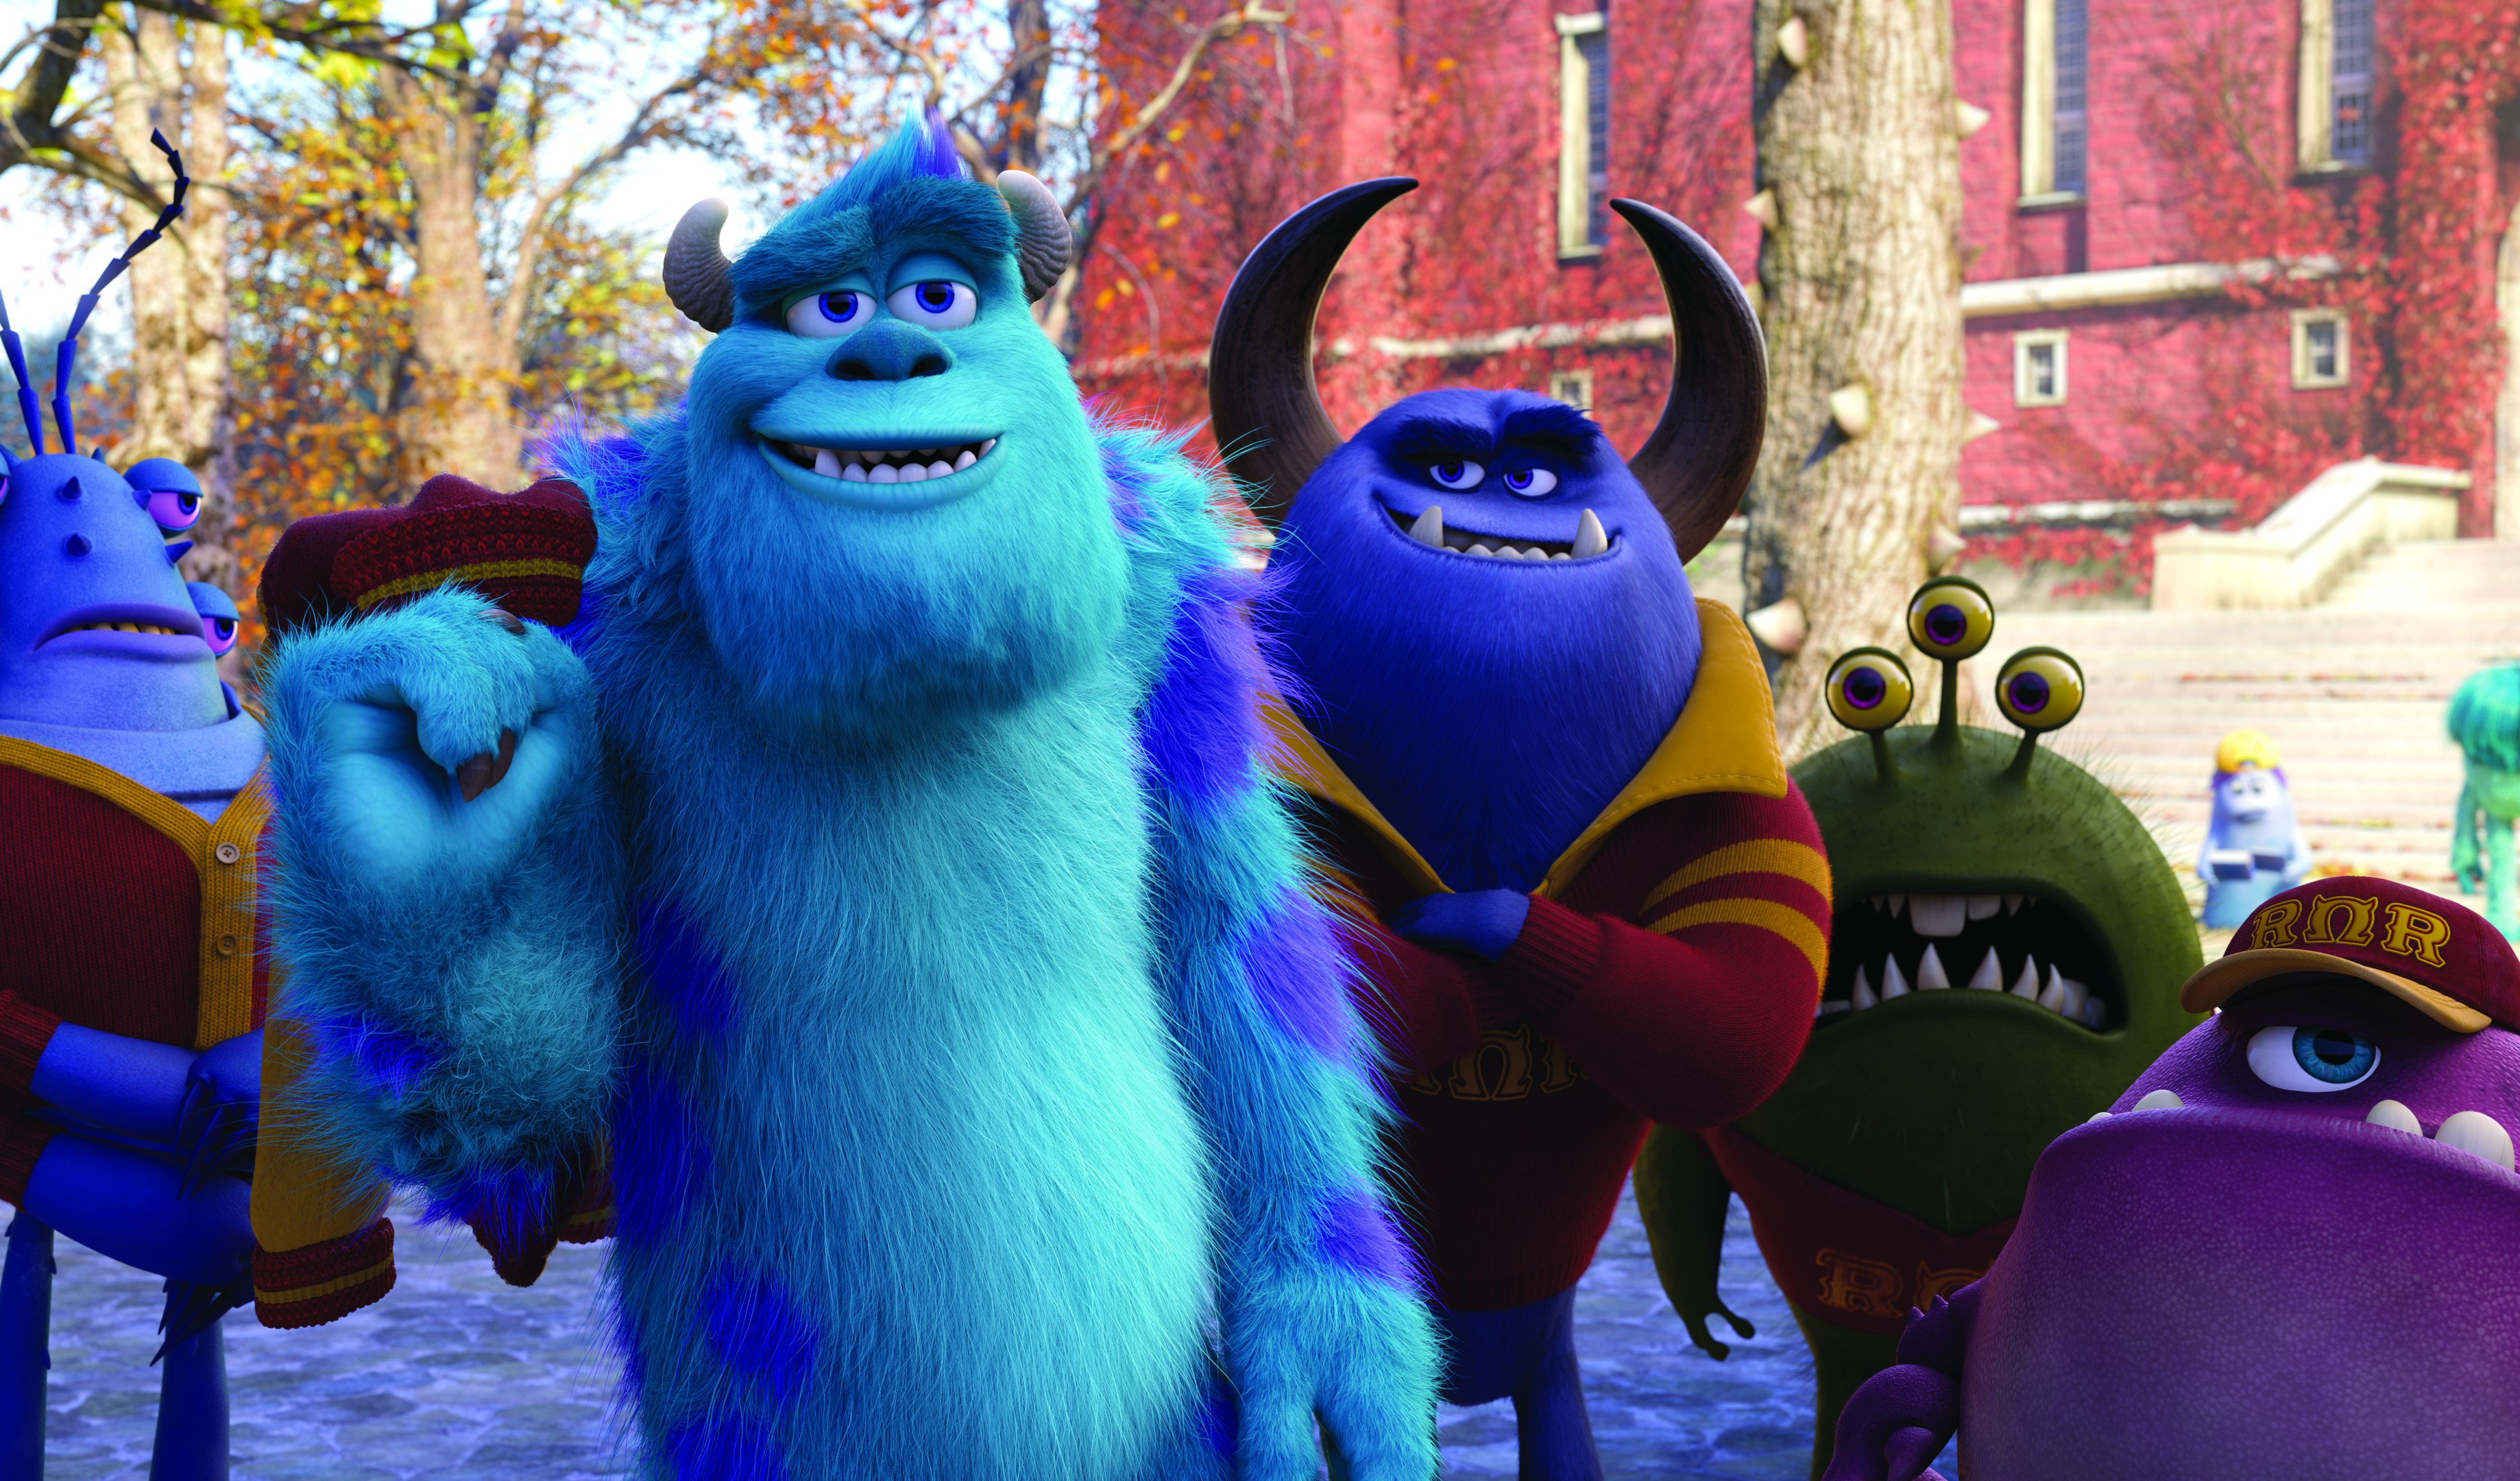 New Monsters University trailer introduces the 'Scare Games'